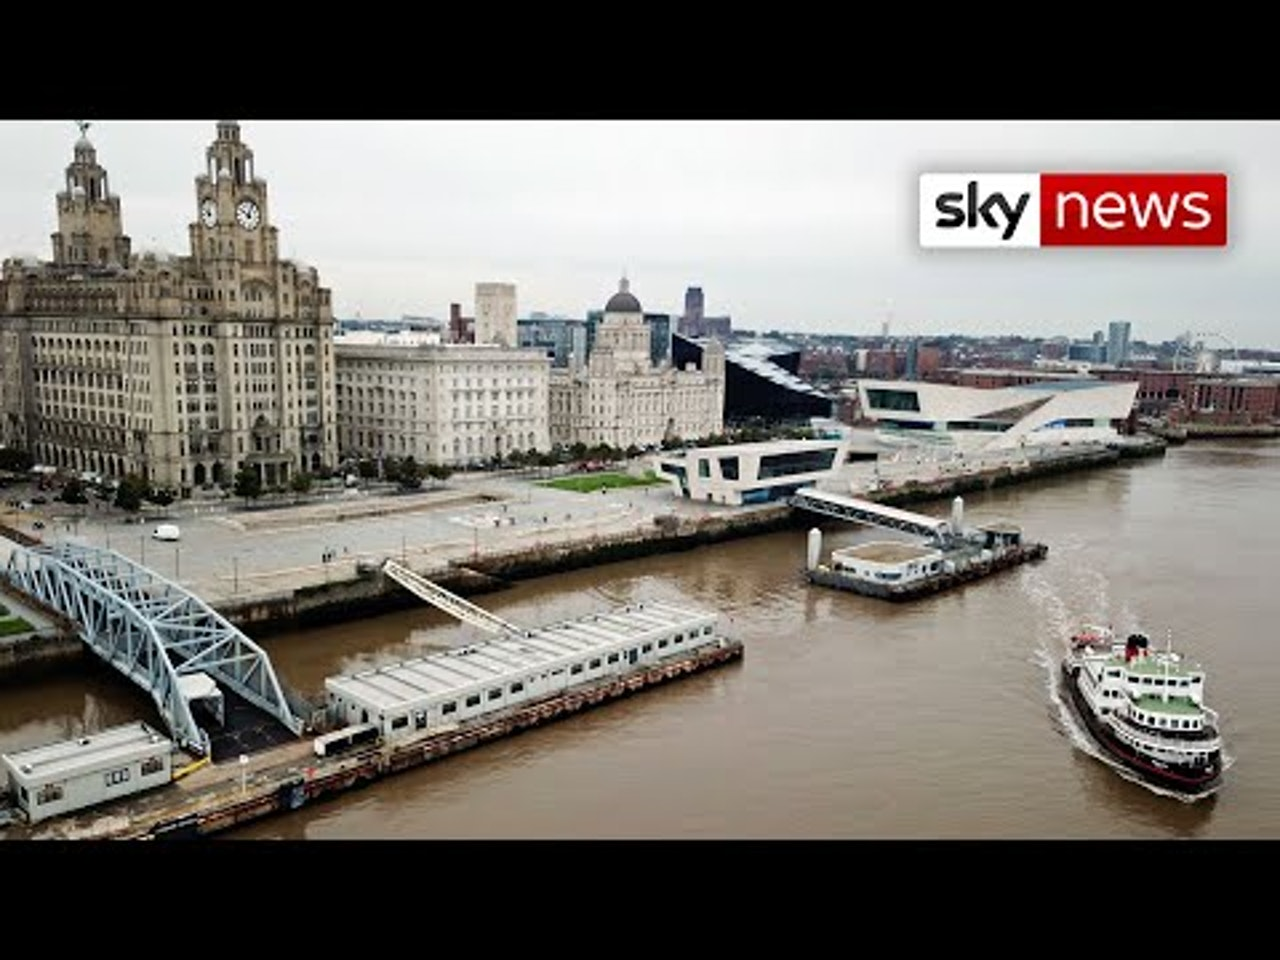 Pubs expected to close in Liverpool under tougher lockdown rules - UK COVID-19 update